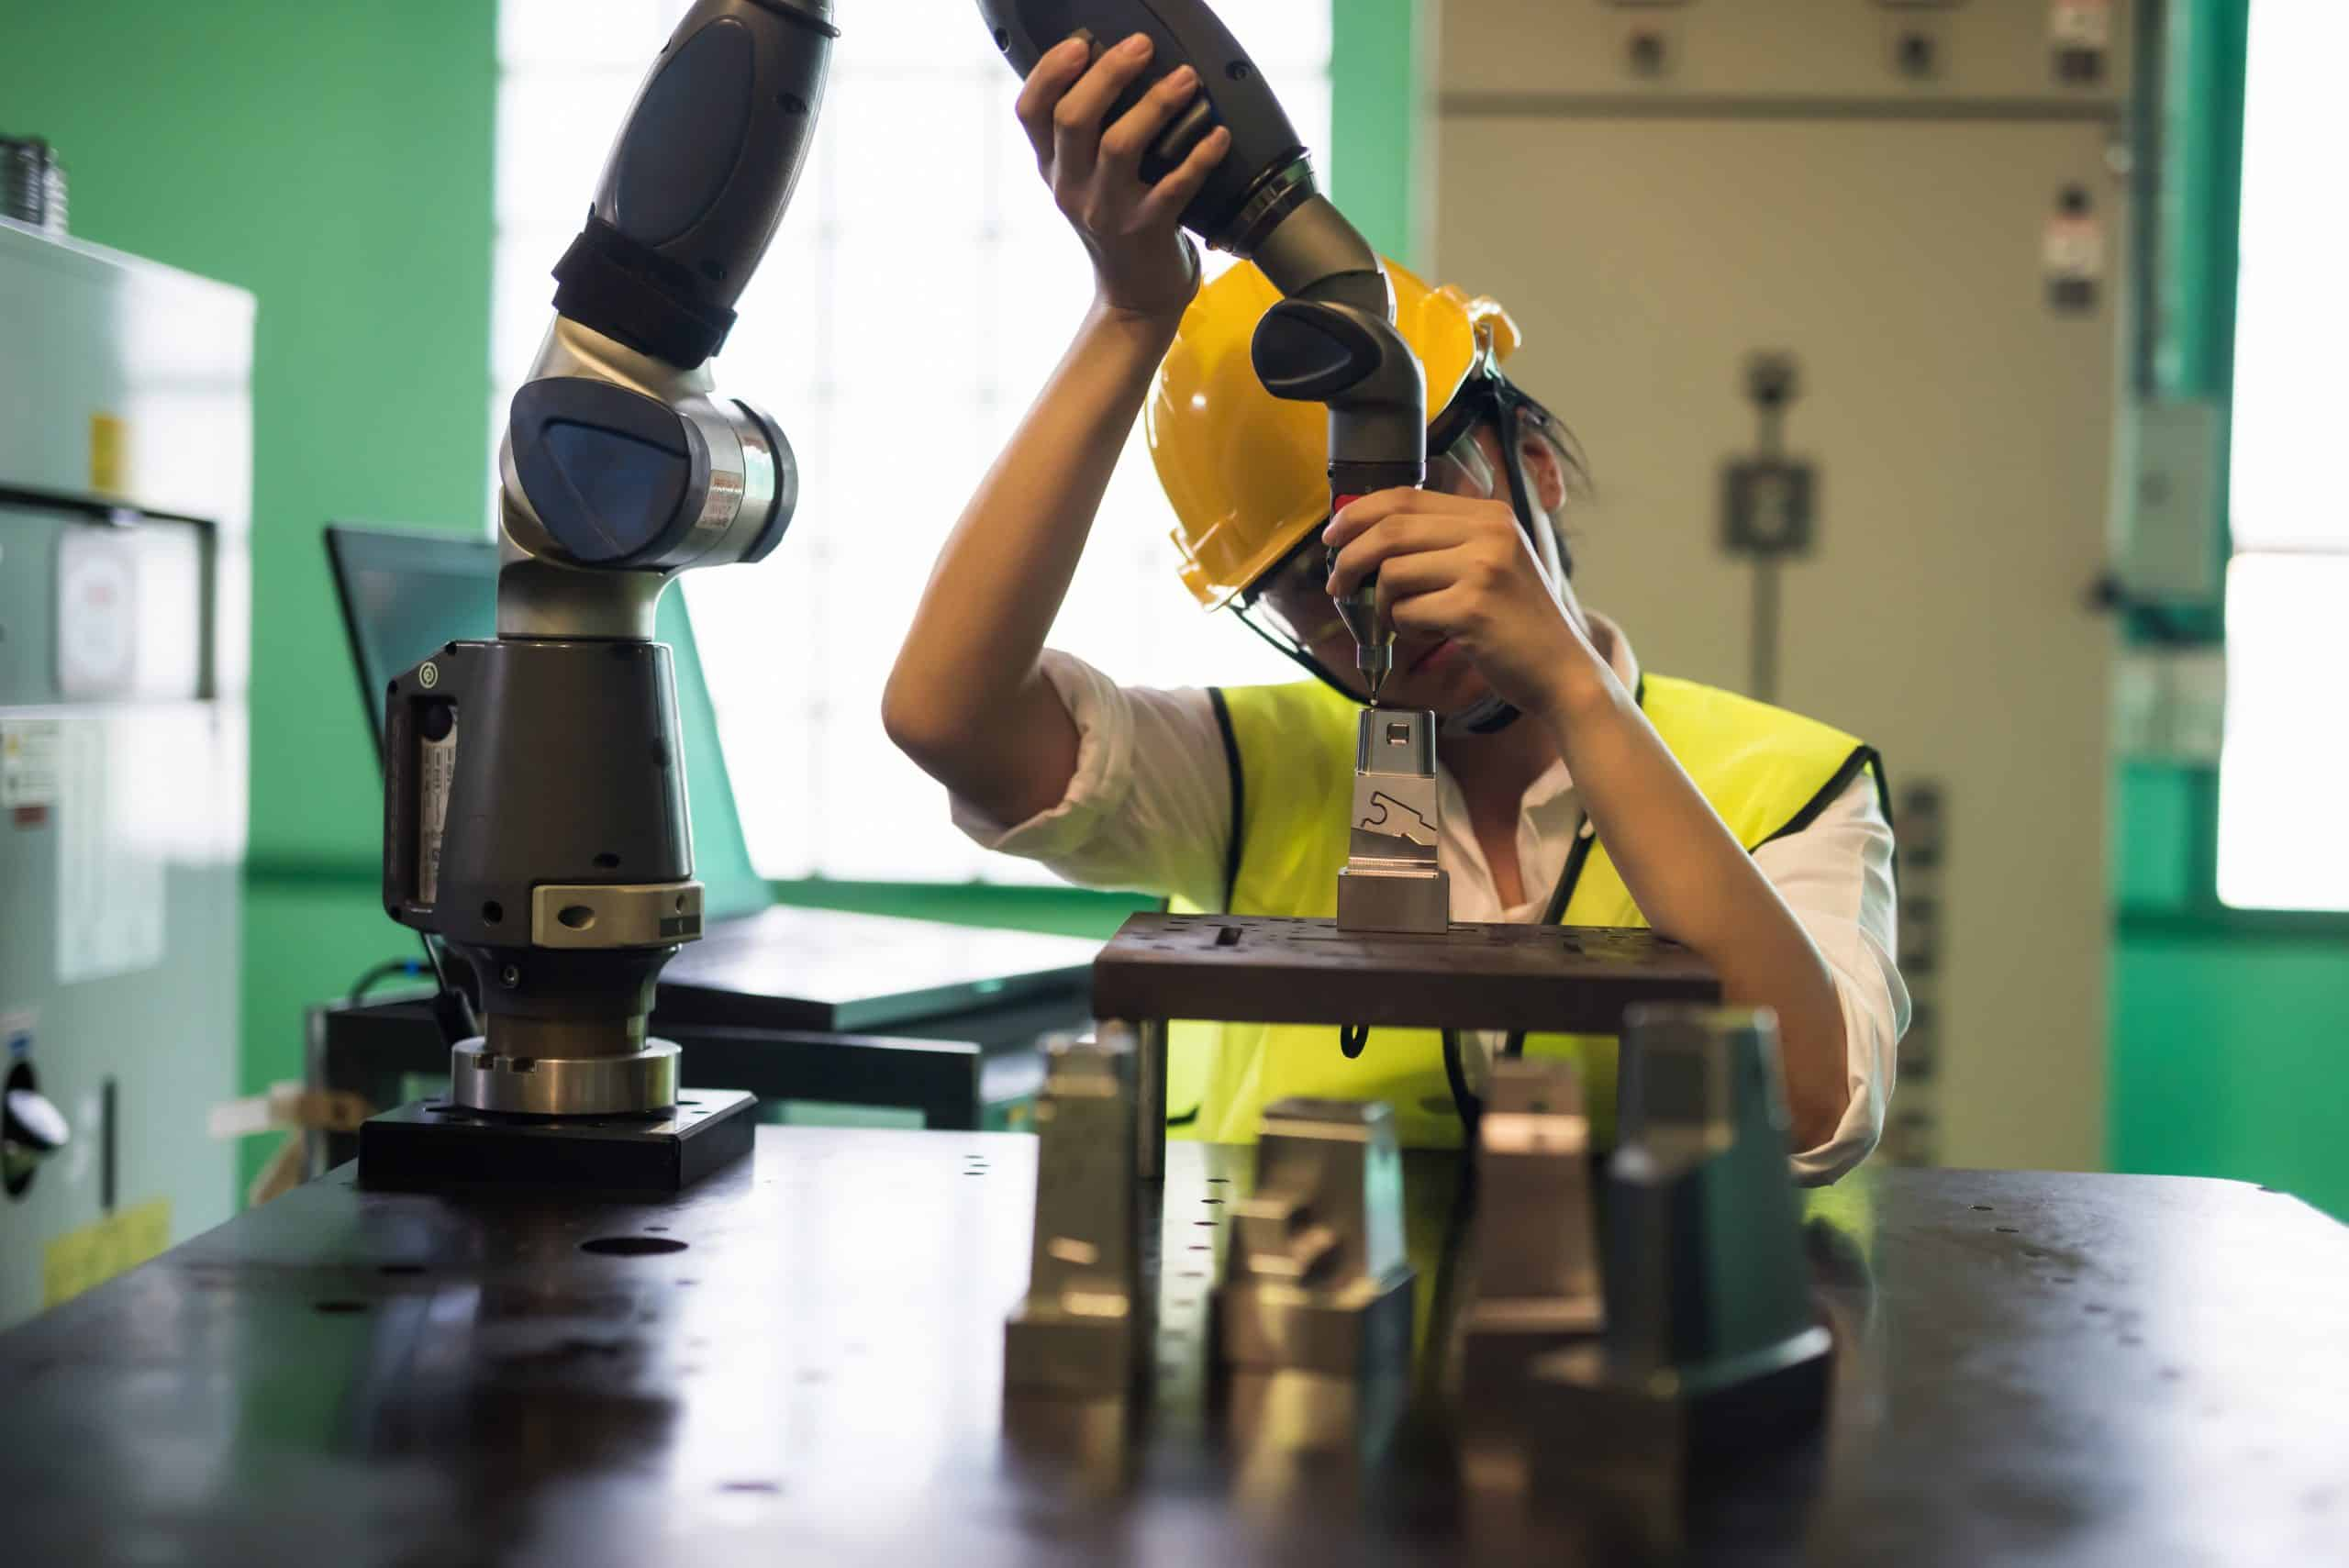 Waist up technician engineer inspector wearing hardhat and protection glasses check Automation lache robot arm in automotive manufacturing factory. Quality control (QC) of safety business process.